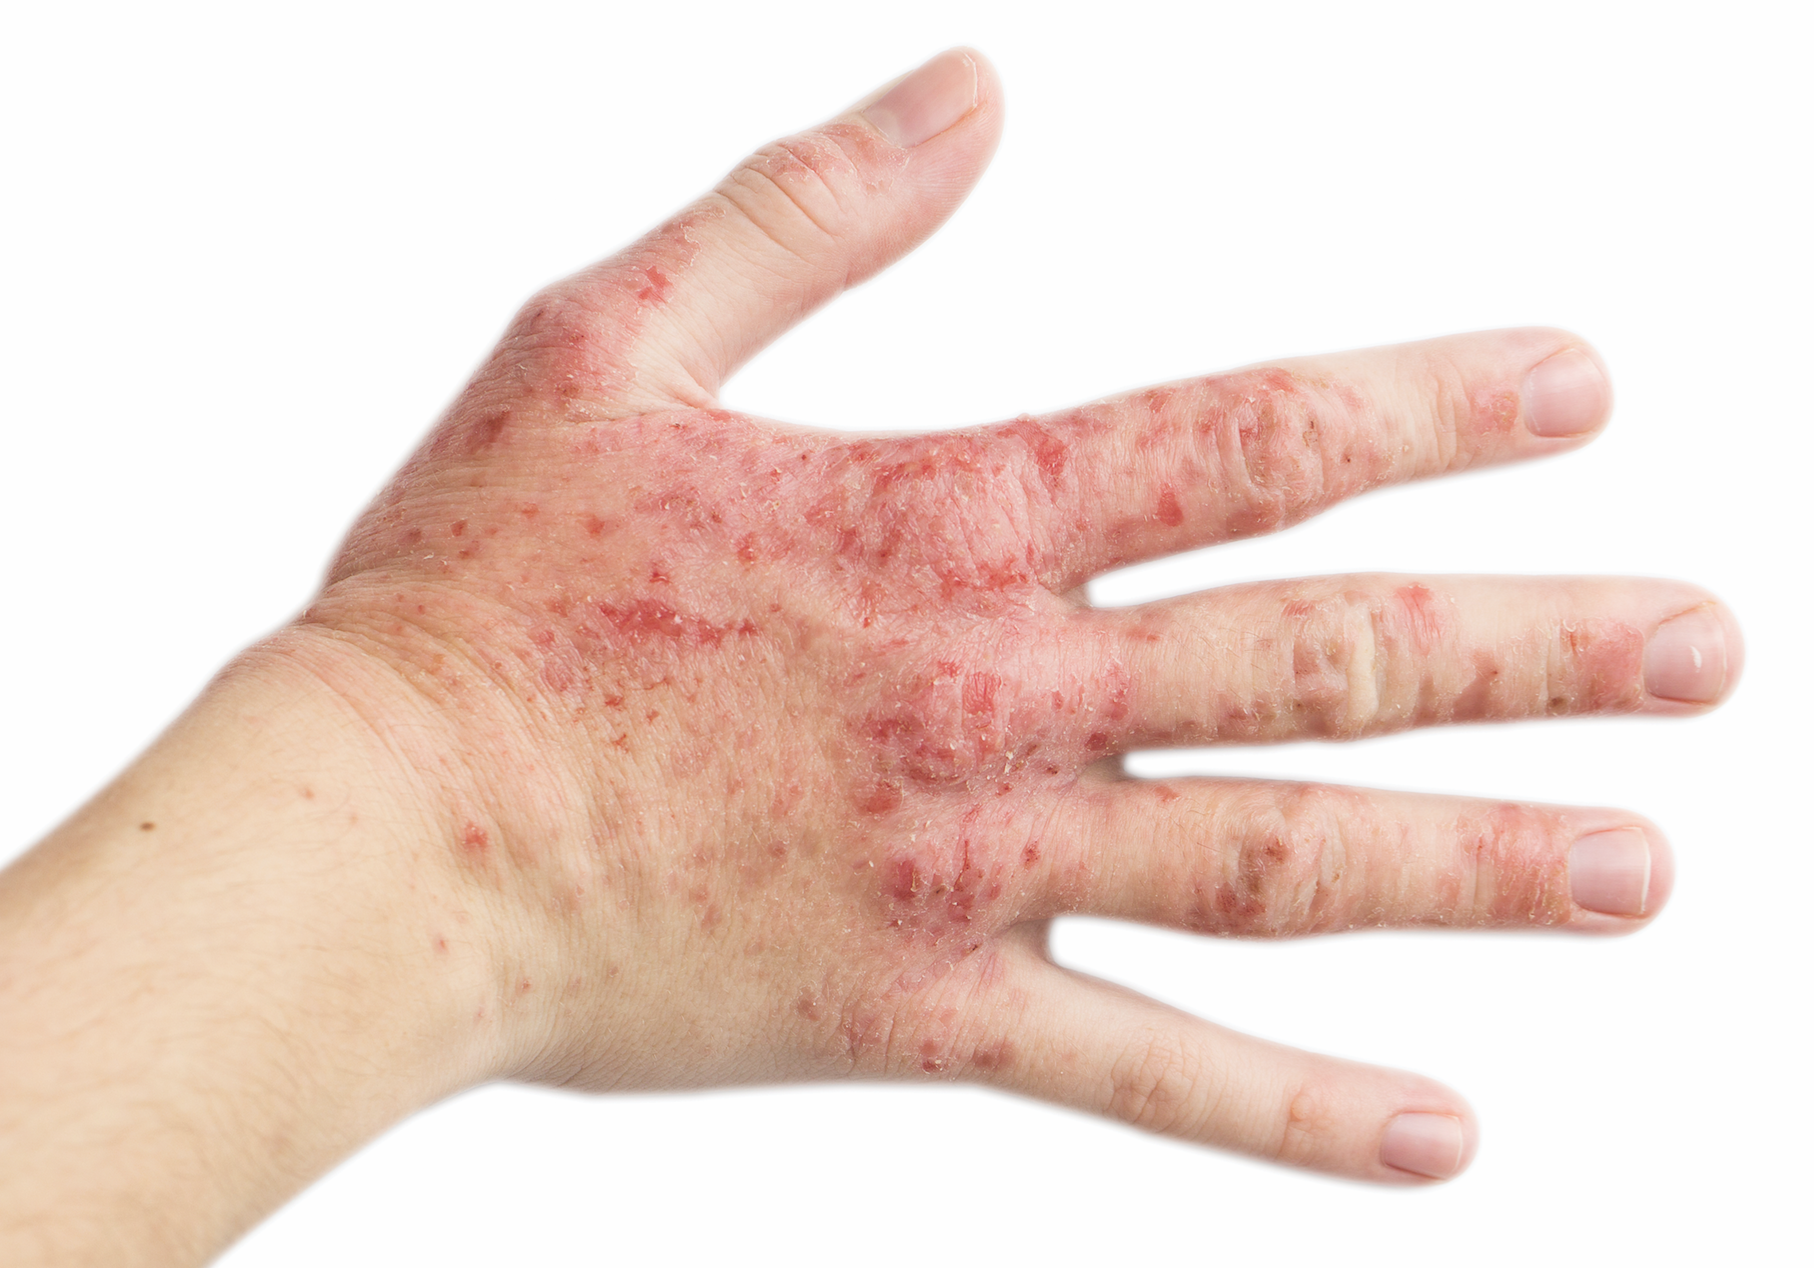 Is Hand Eczema More Common With AD? | The Dermatologist